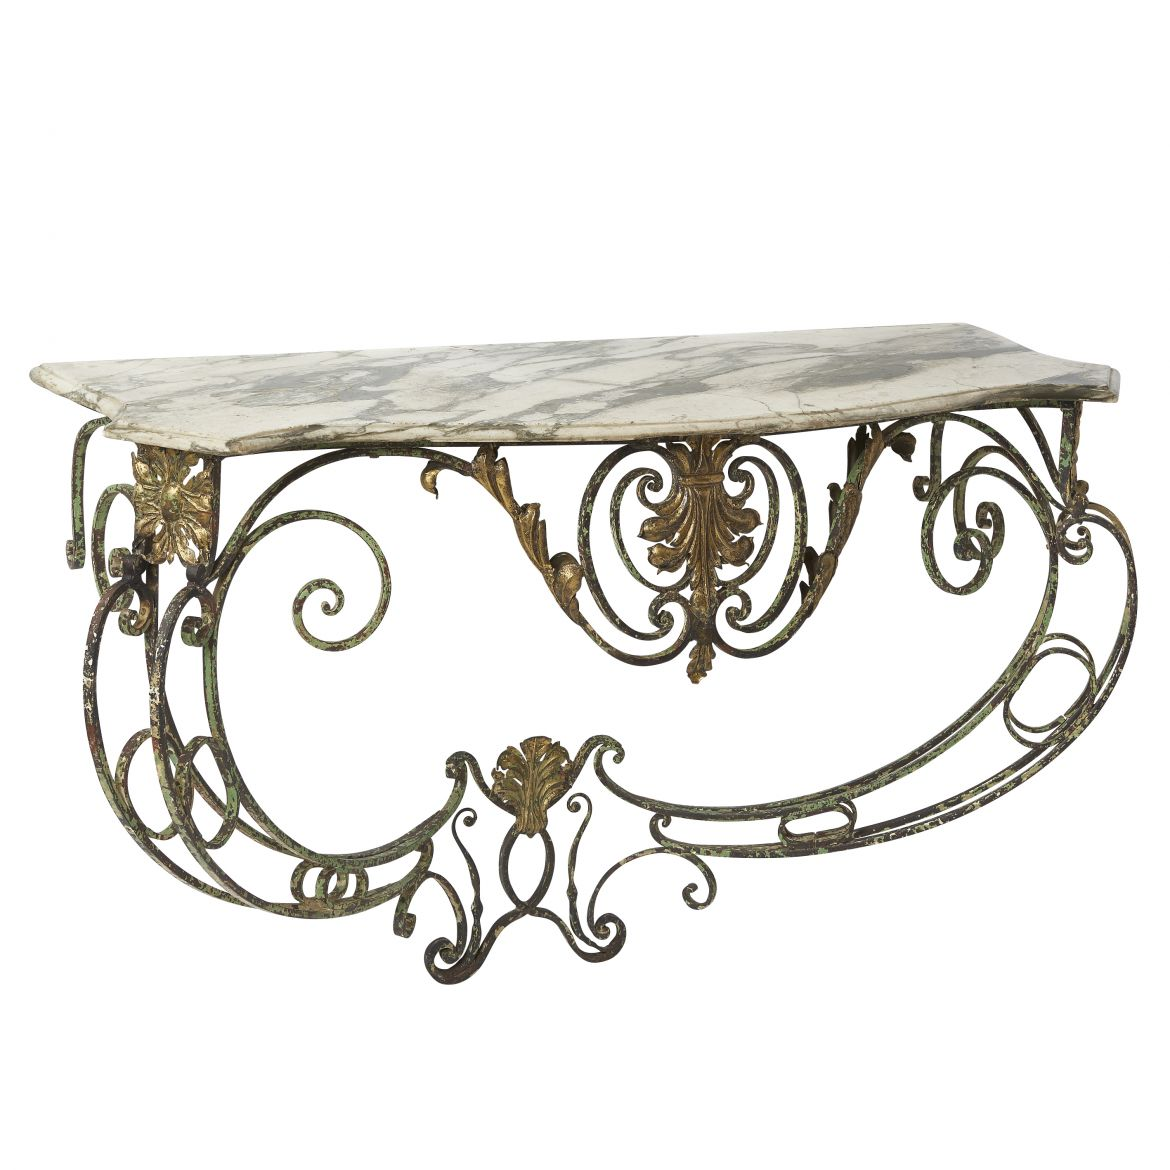 Painted Wrought Iron Console